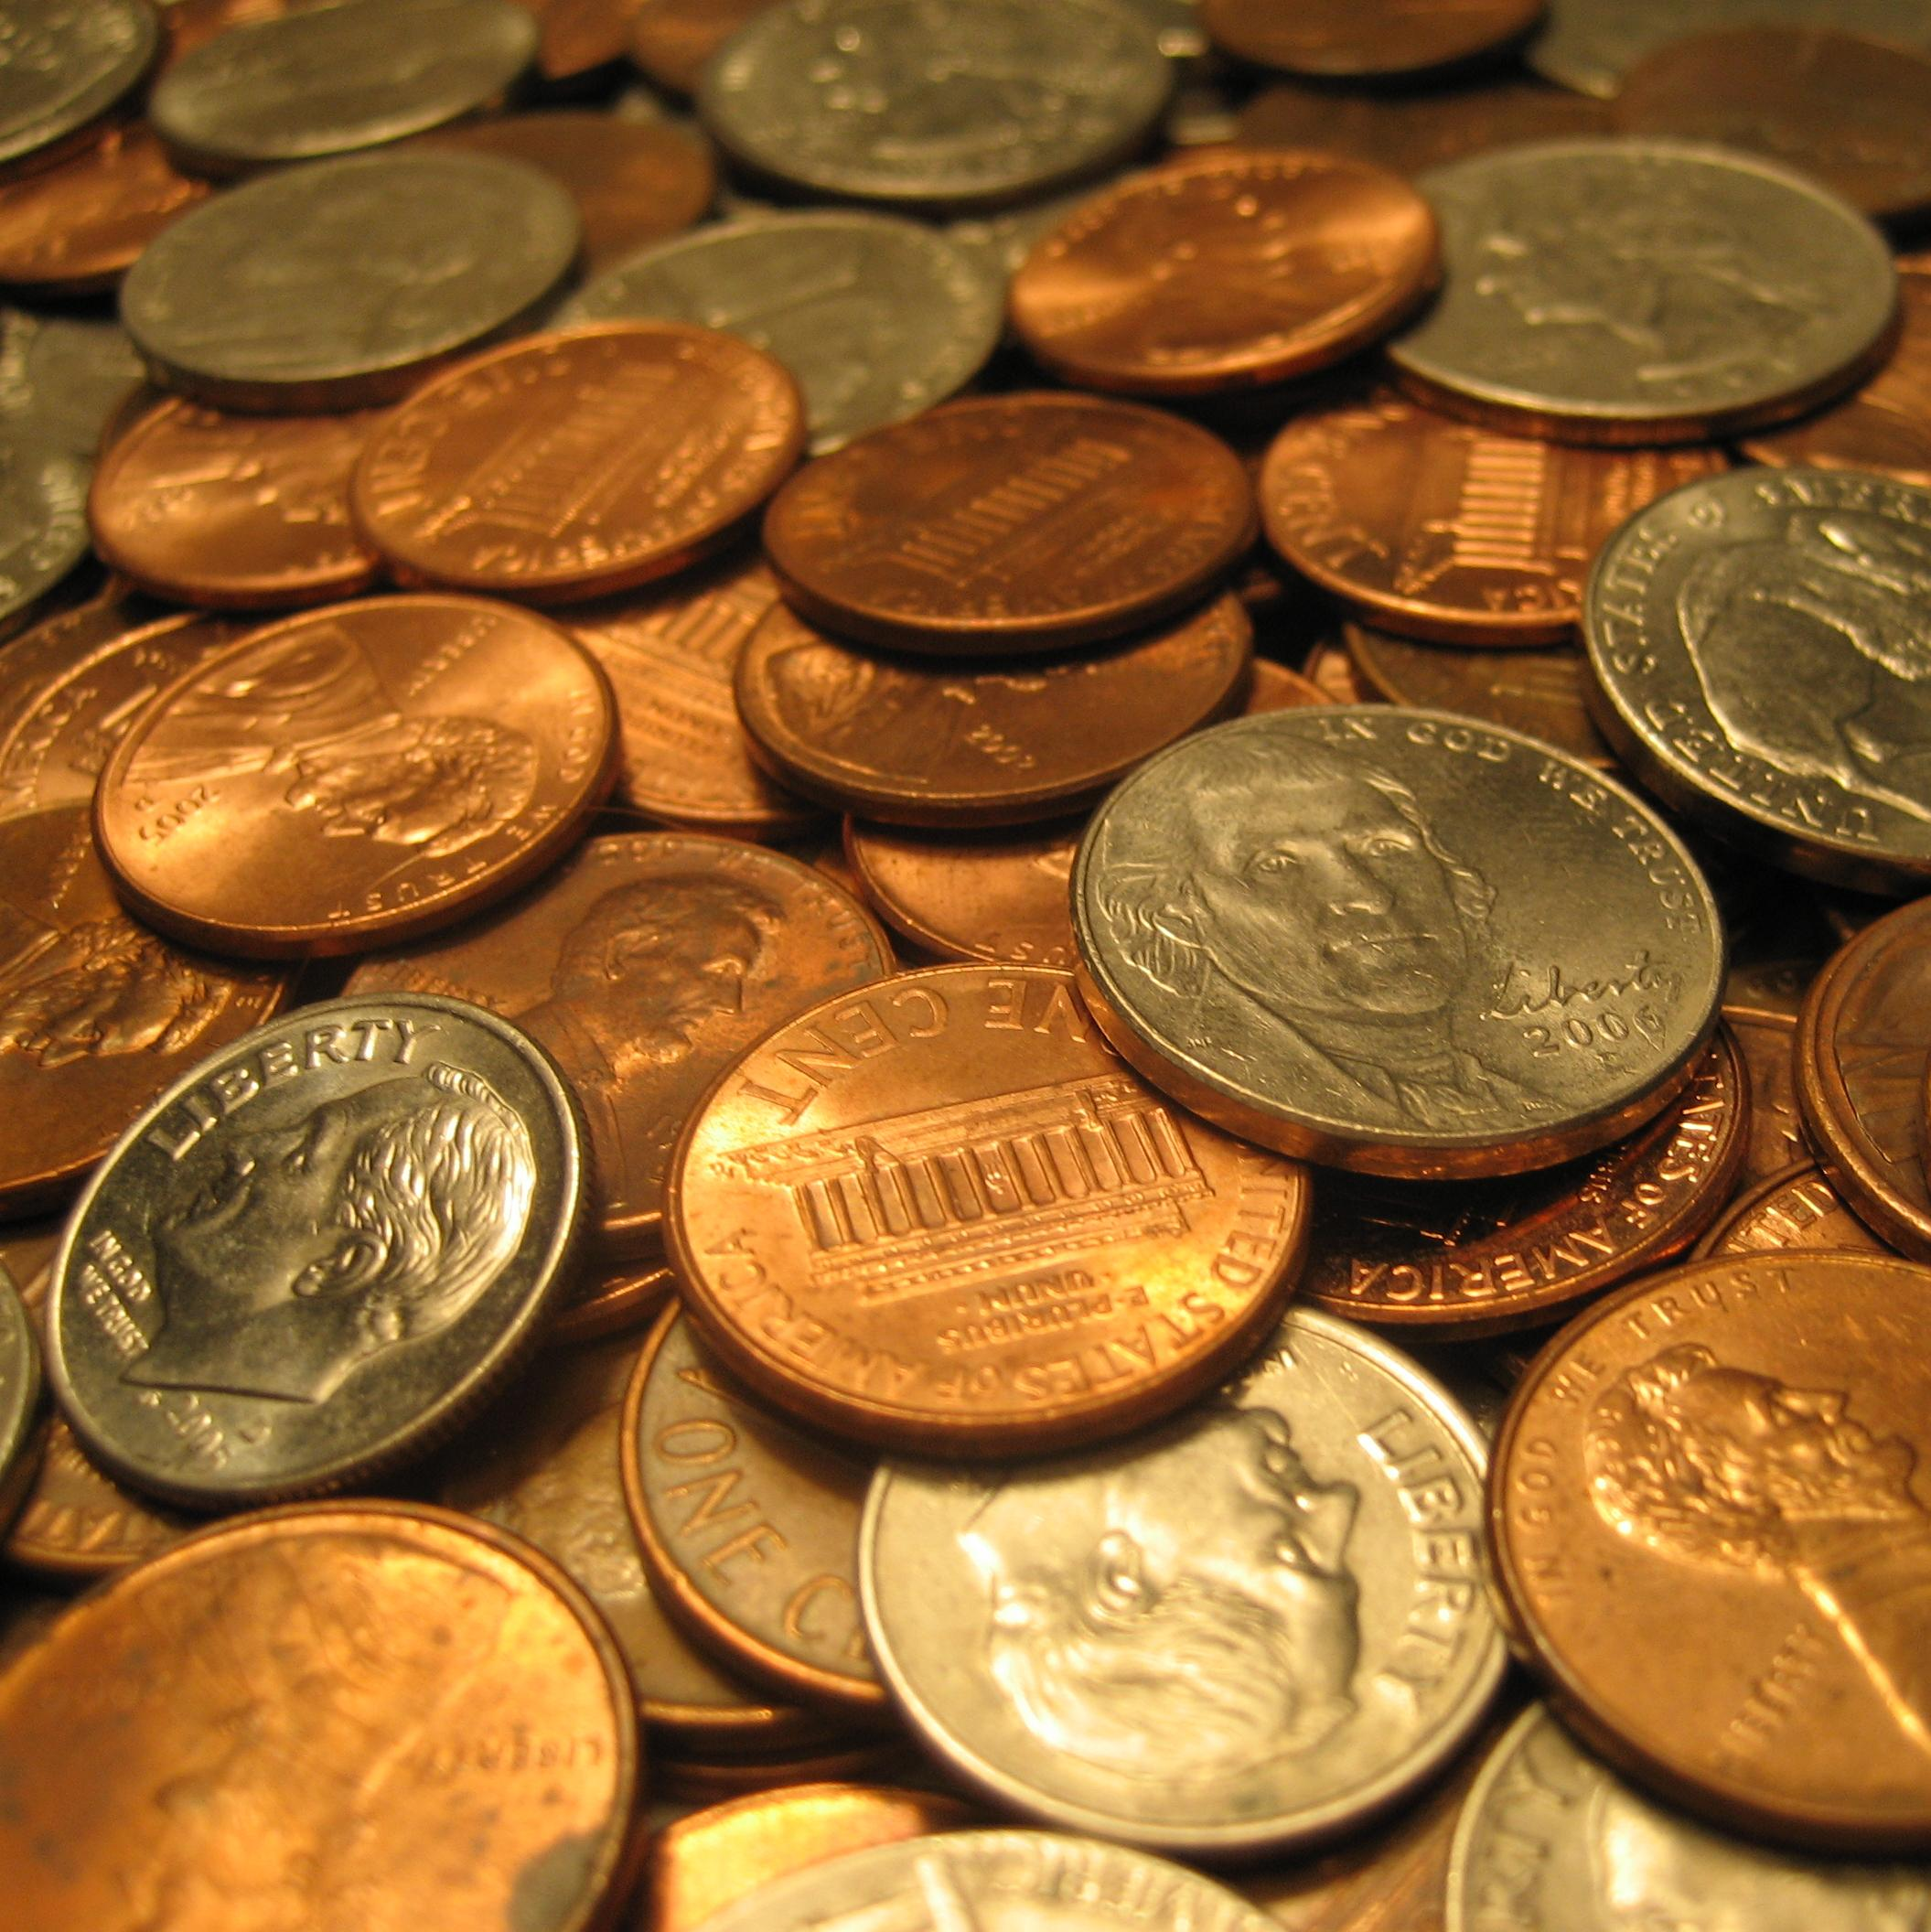 An assortment of United States coins in a pile.